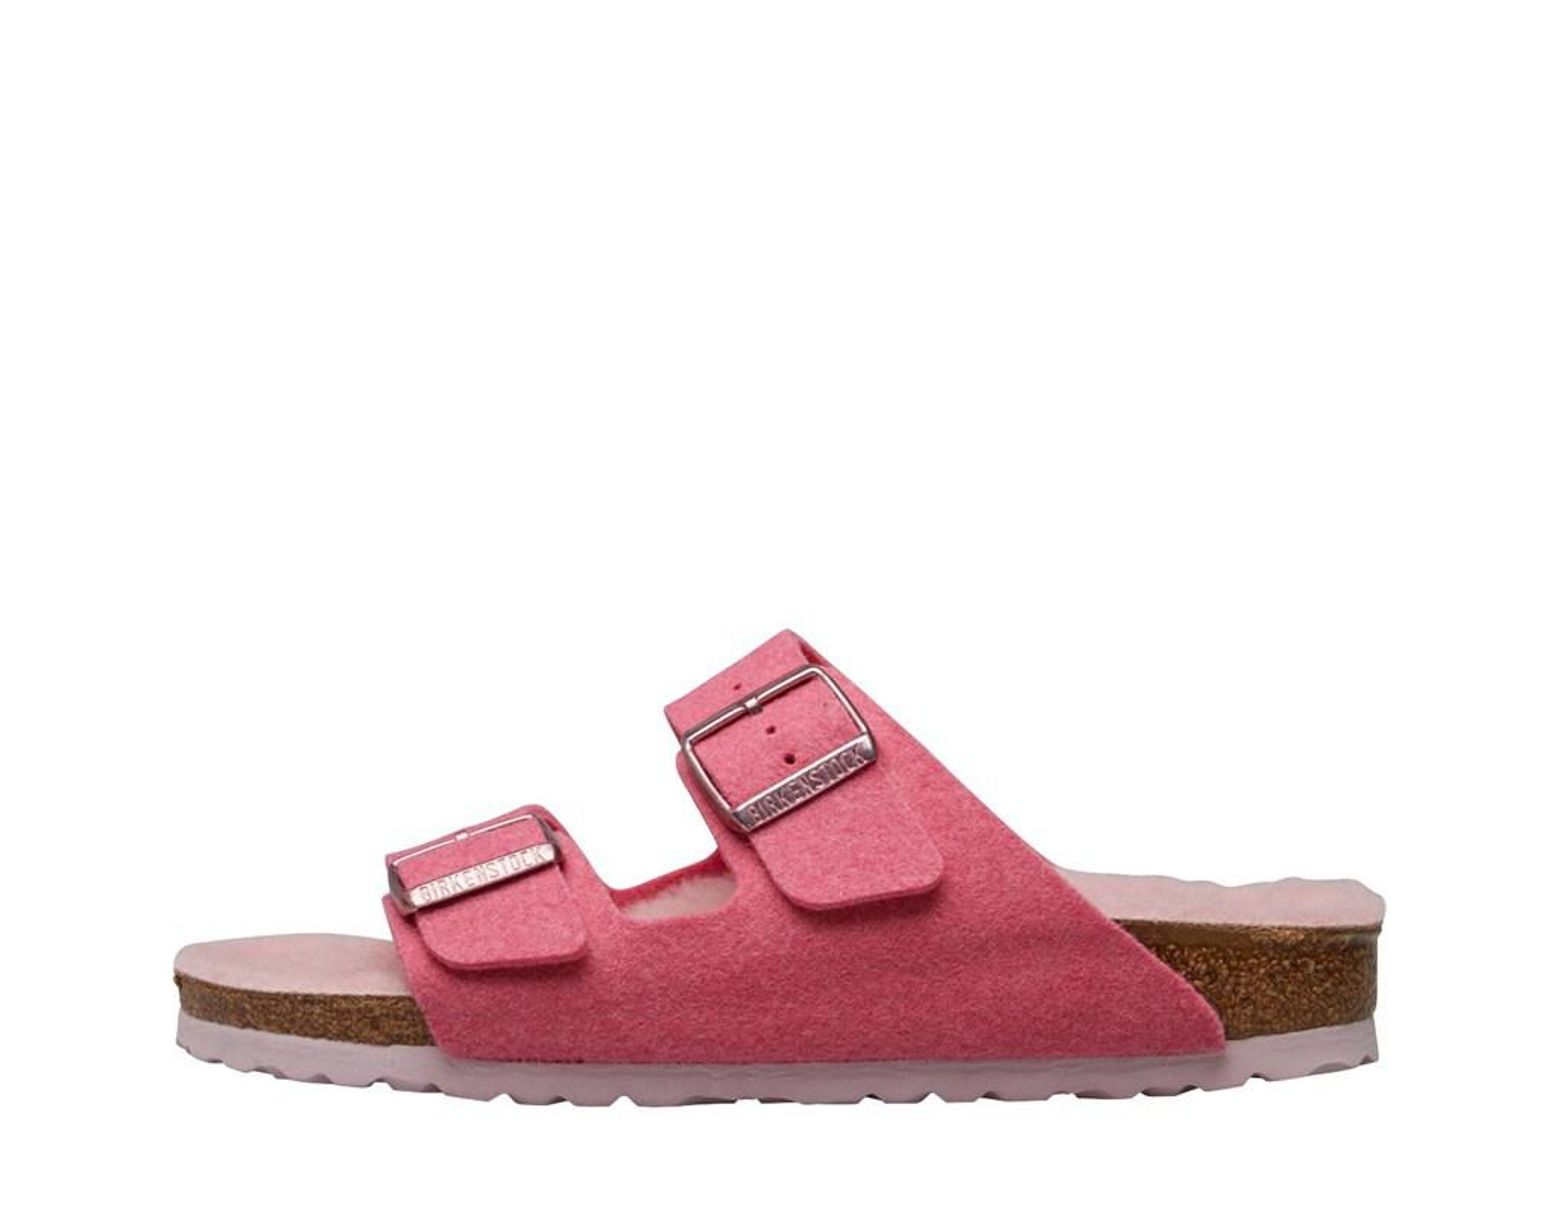 616633f6ed40d0 Birkenstock Damen Arizona Wz Wool Felt Happy Lamb Sandalen Rosa in Pink -  Lyst